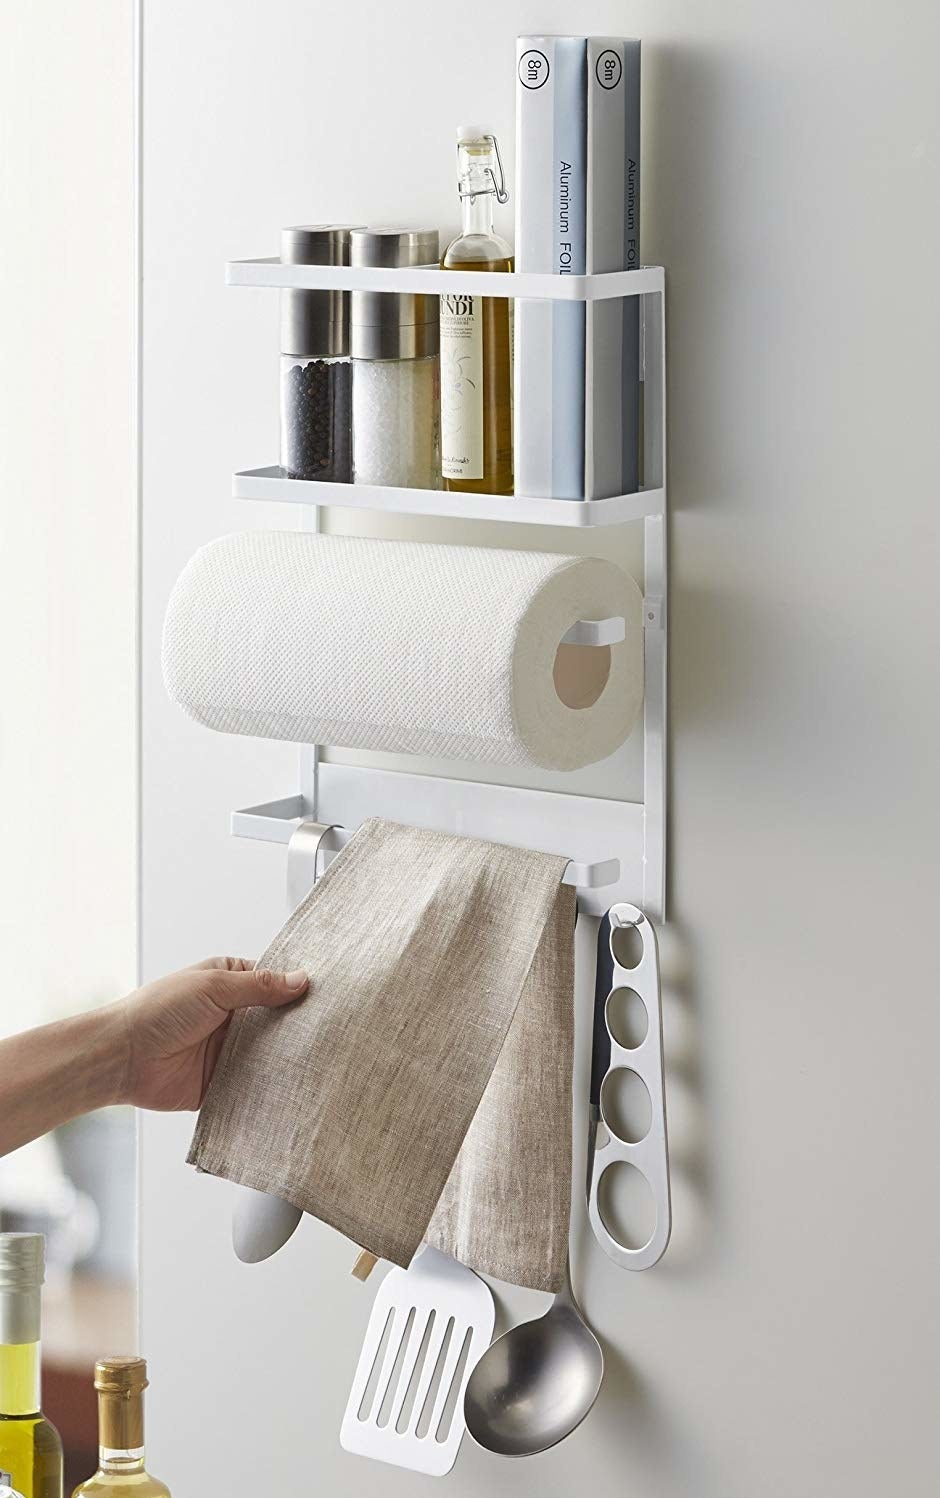 organizer on side of a fridge holding a paper towel roll, salt, pepper, and oil on a top rack, and a towel and cooking utensils hanging from hooks on the bottom